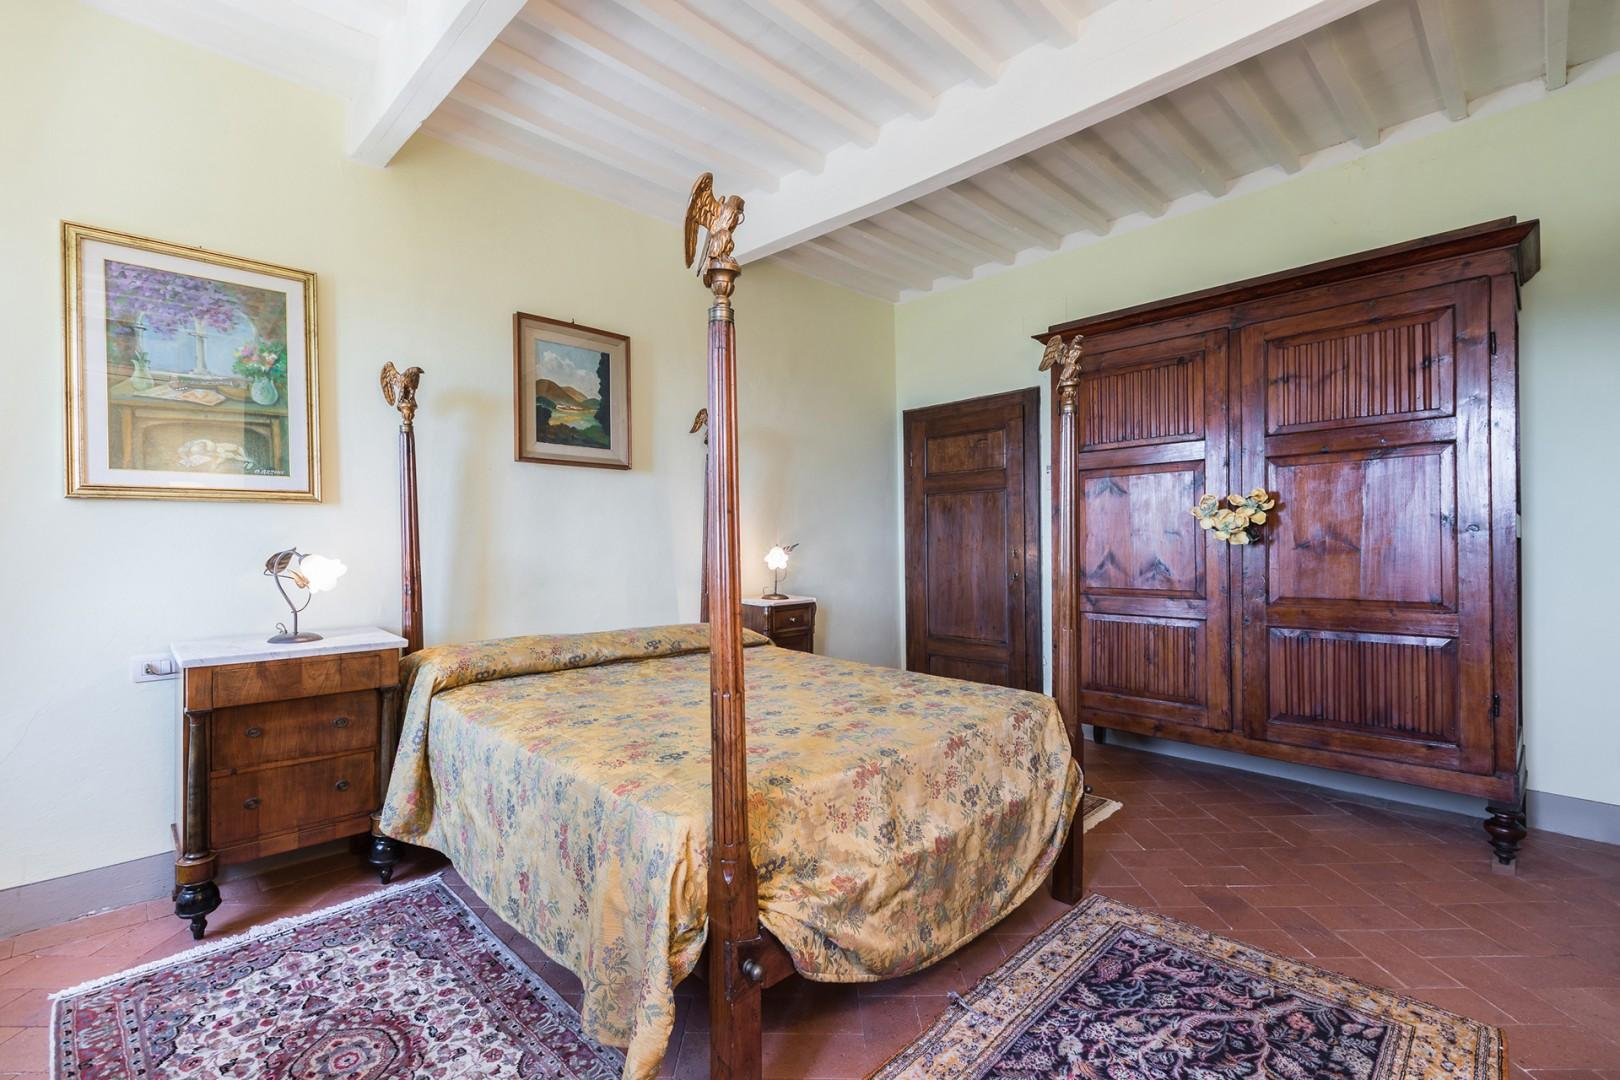 Bedroom 3 was used by the first king of Italy. En suite bathroom.